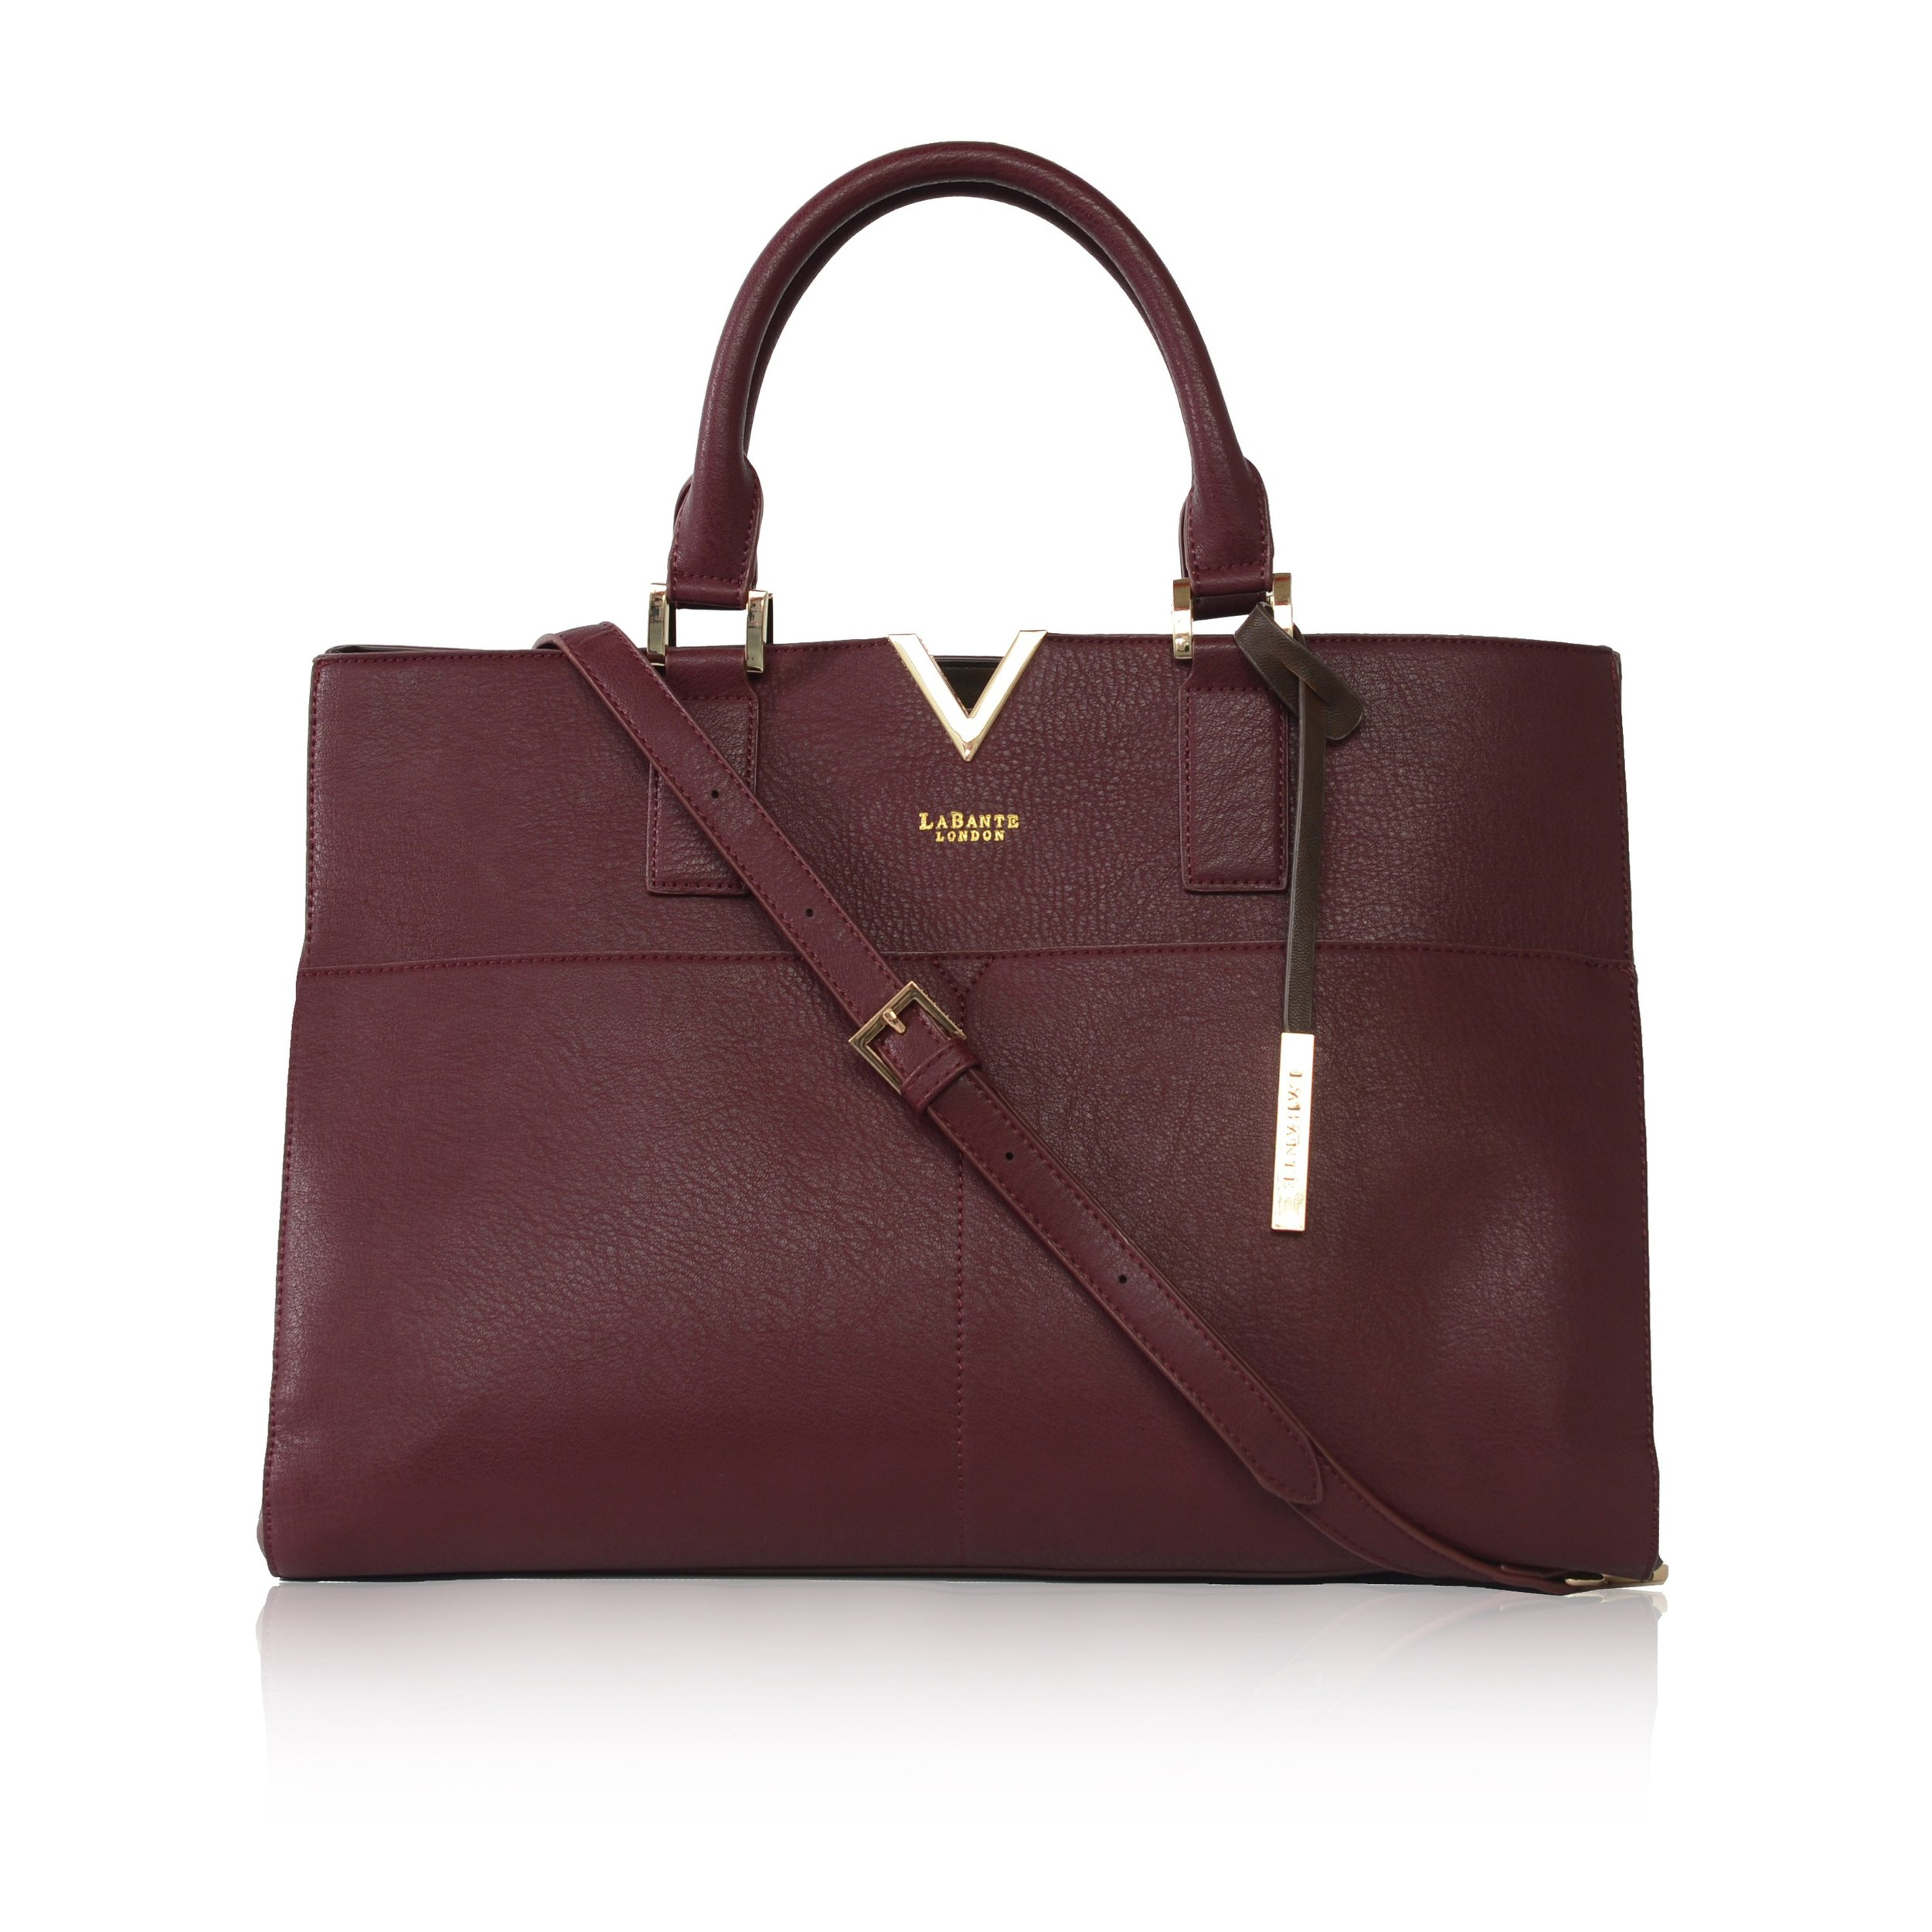 LABANTE LONDON   aVANT CARRYALL BAG, BORDEAUX  €175,16